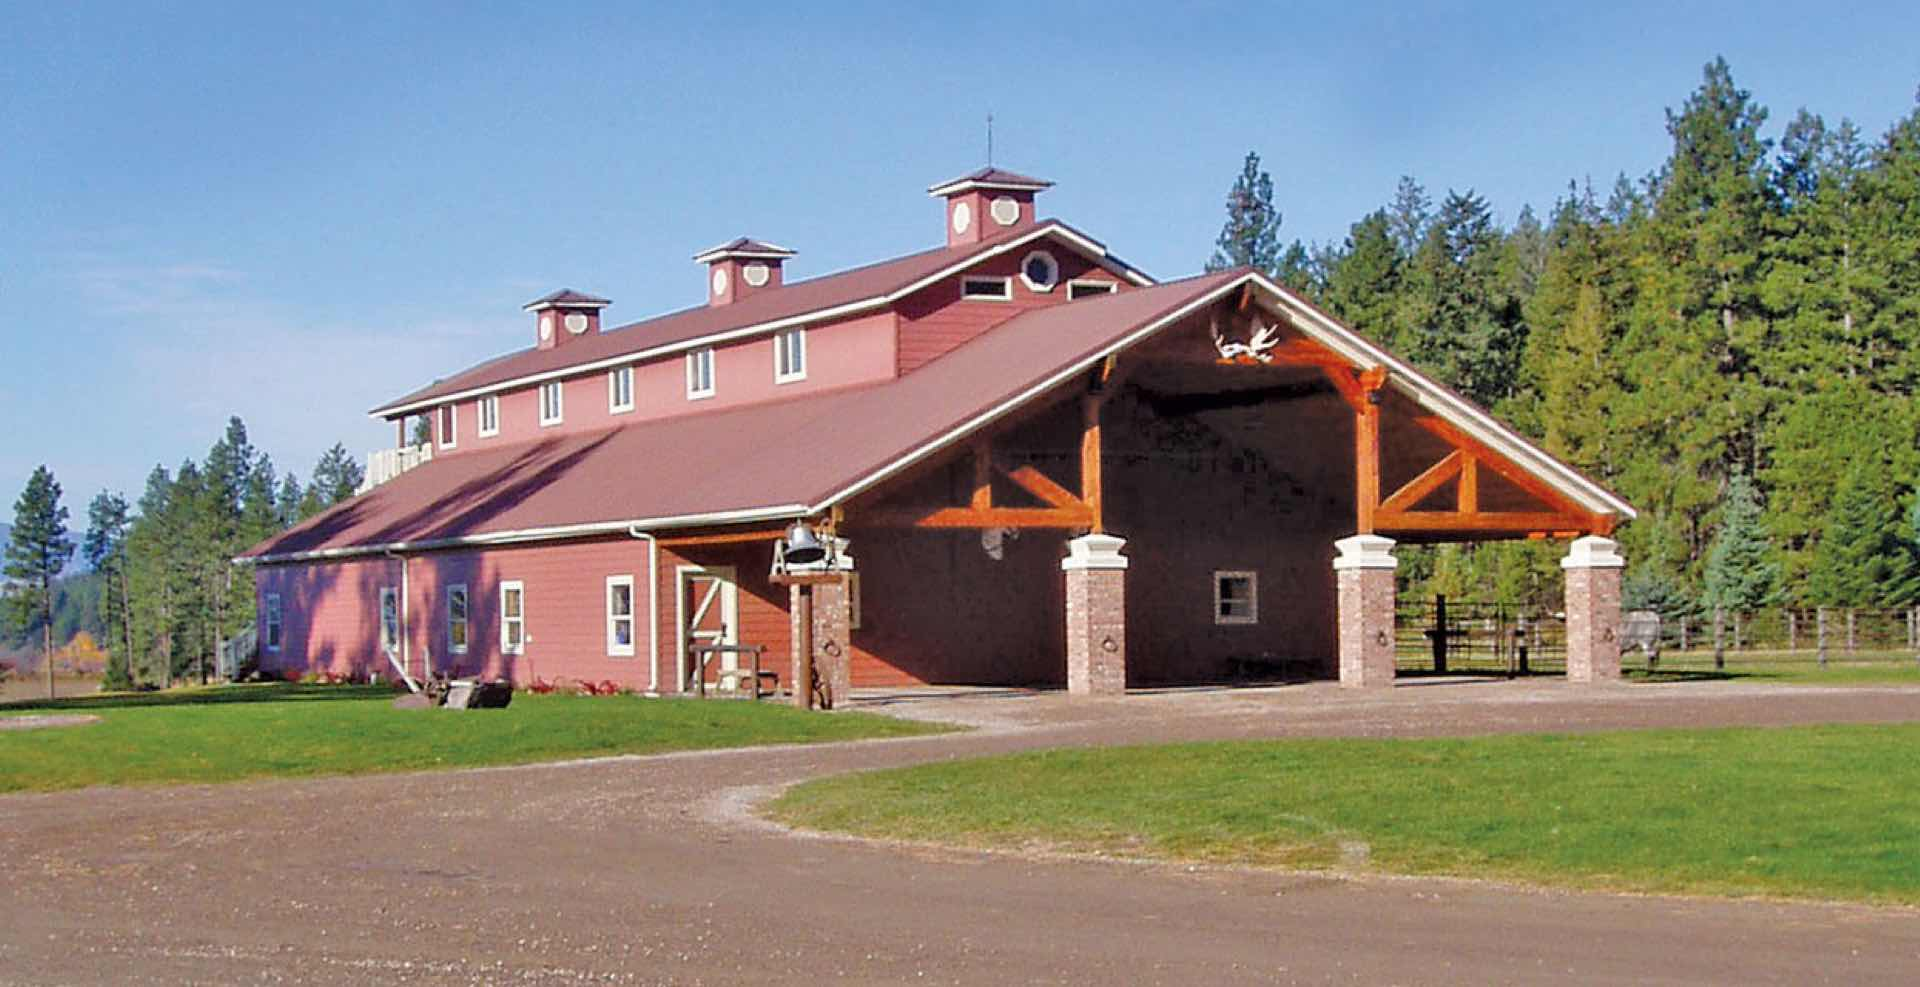 The Barn at Finley Point